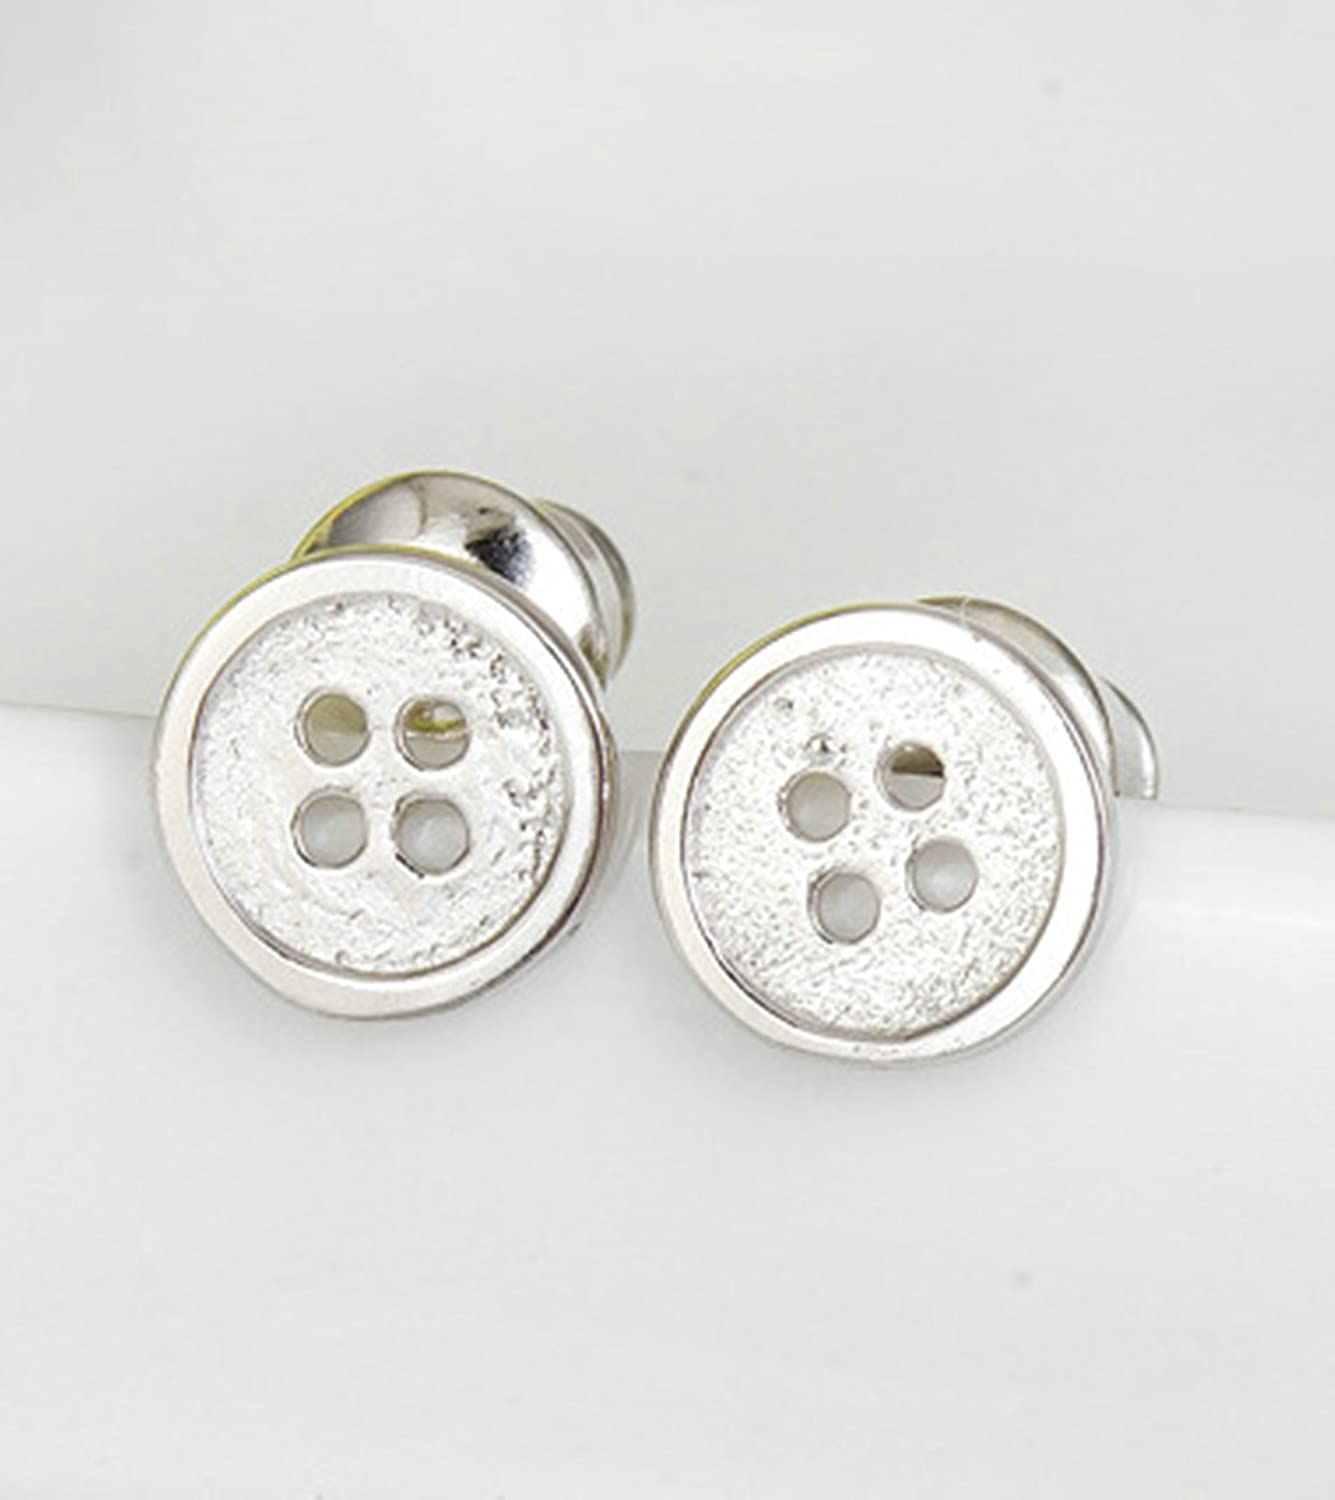 Gnzoe Jewelry Women White Gold Plated Stud Earrings Thickened Backfinding Button Tini Piercing Earrings 6.5x6.5MM